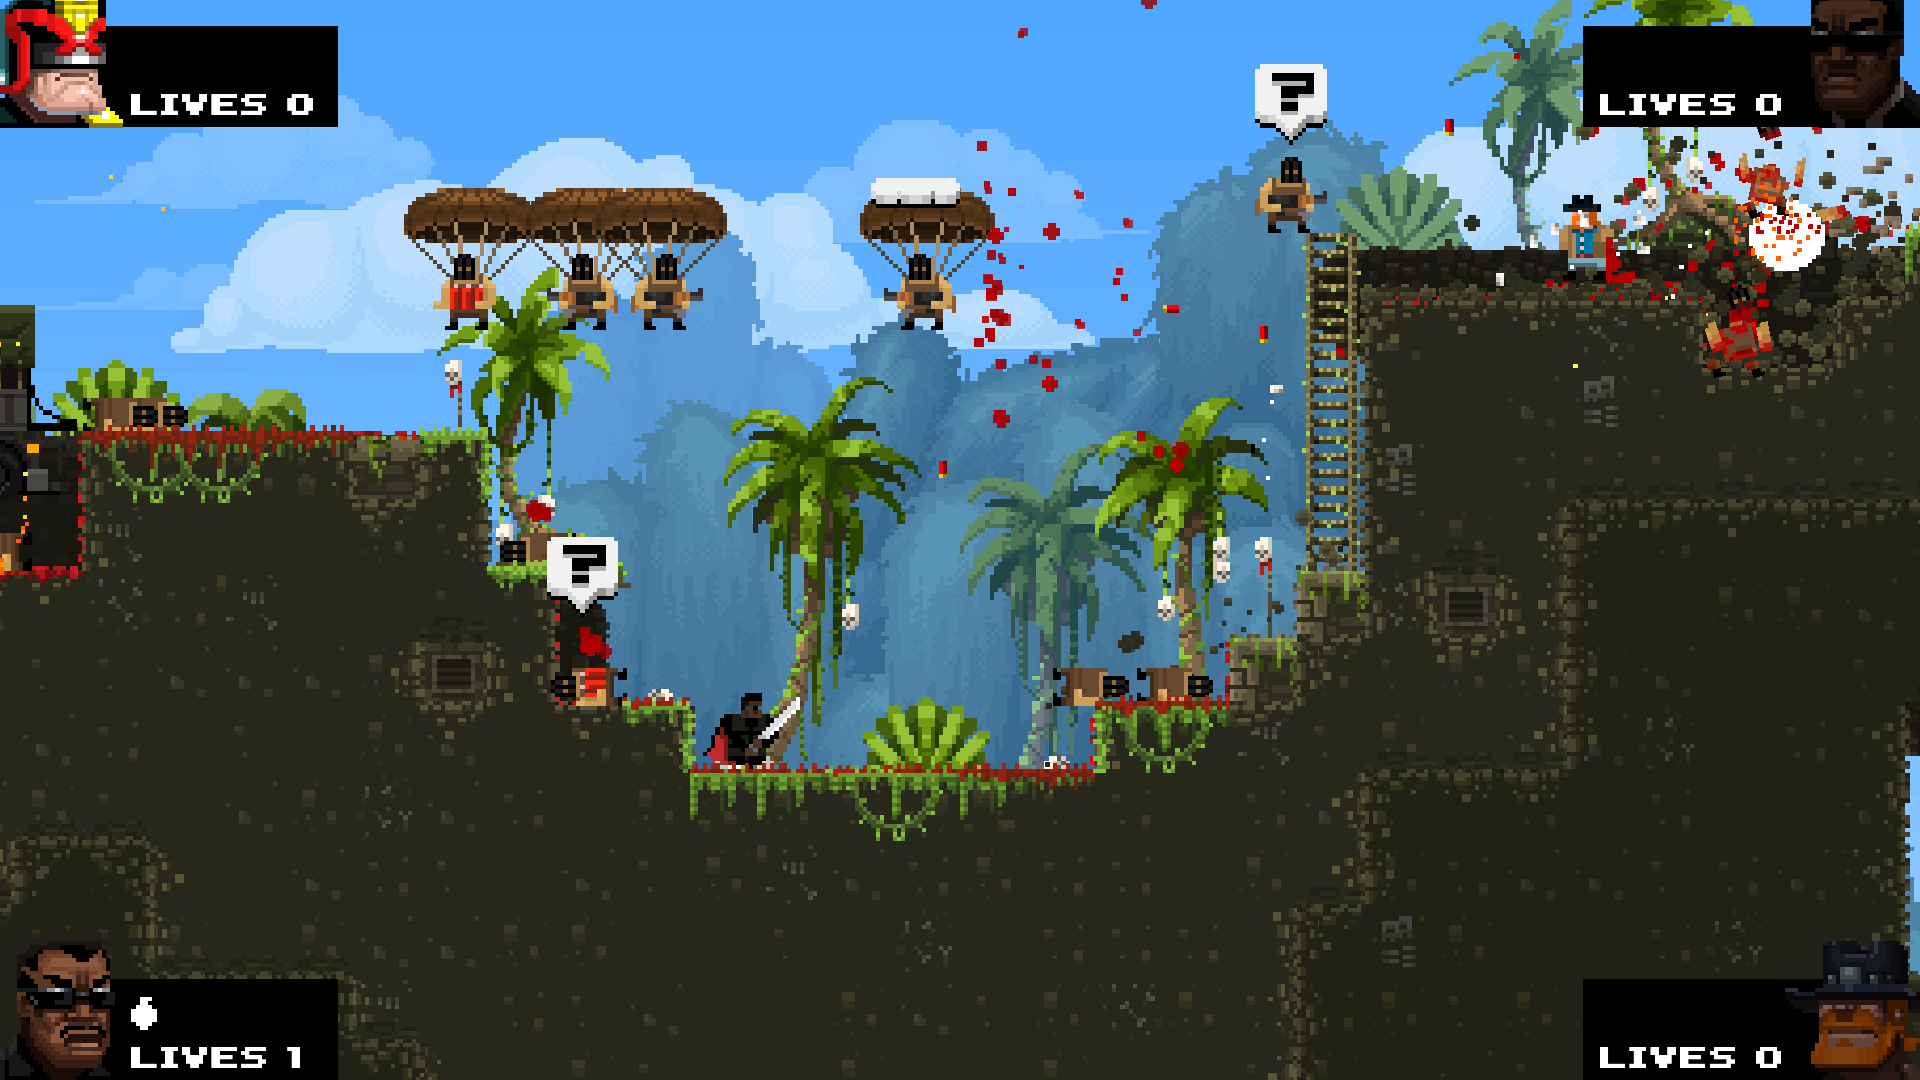 http://upload.wikimedia.org/wikipedia/commons/1/19/Broforce_parachute_mooks.png